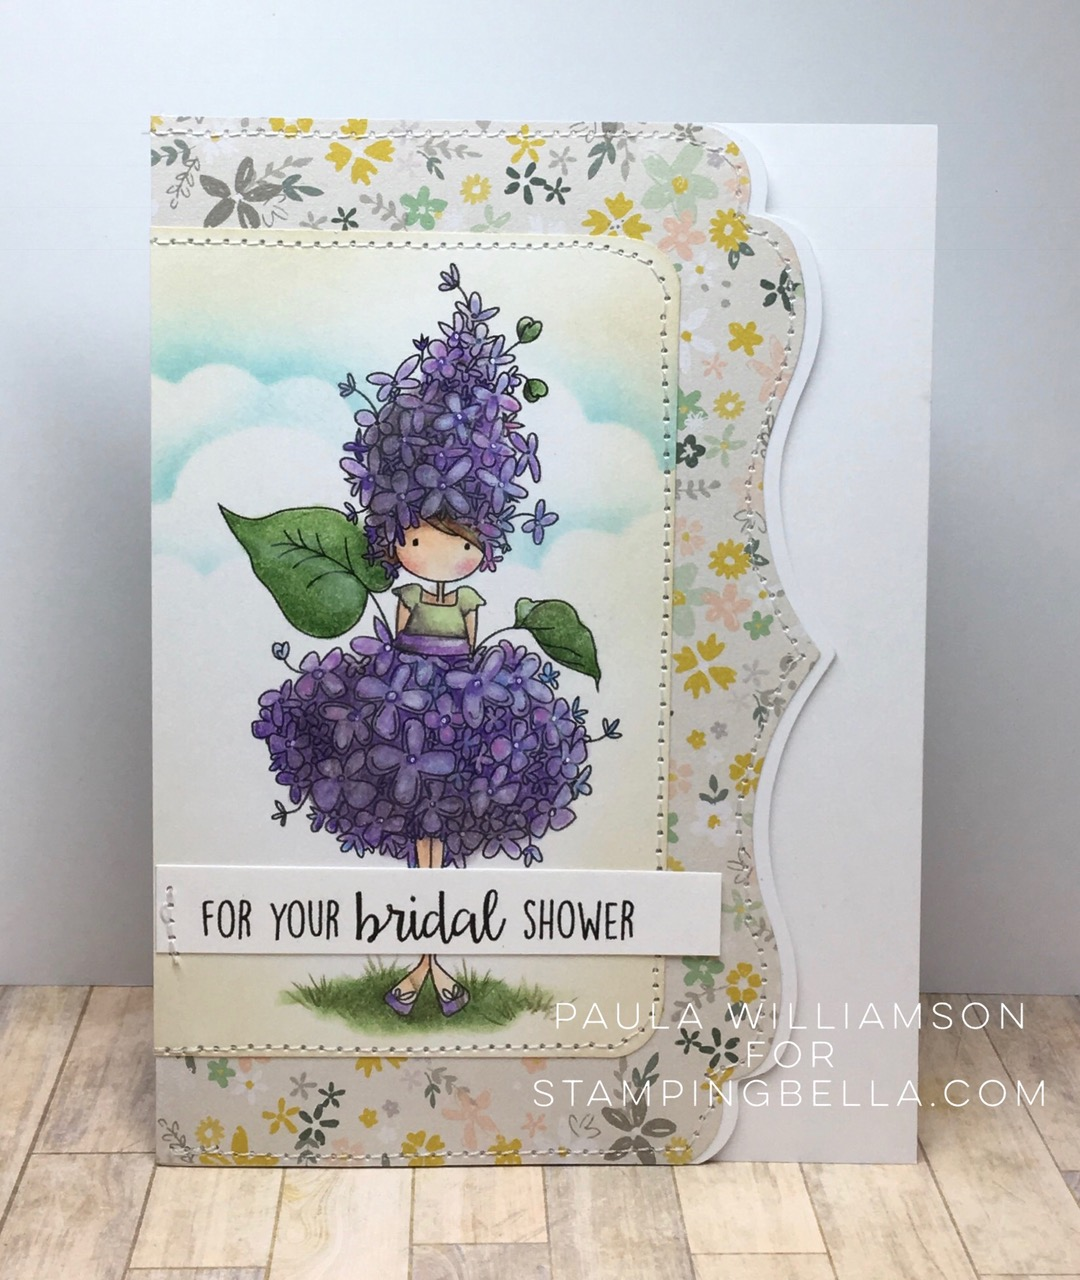 Bellarific Friday challenge with STAMPING BELLA- Card made by Paula Williamson  using our TINY TOWNIE GARDEN GIRL LILAC rubber stamp